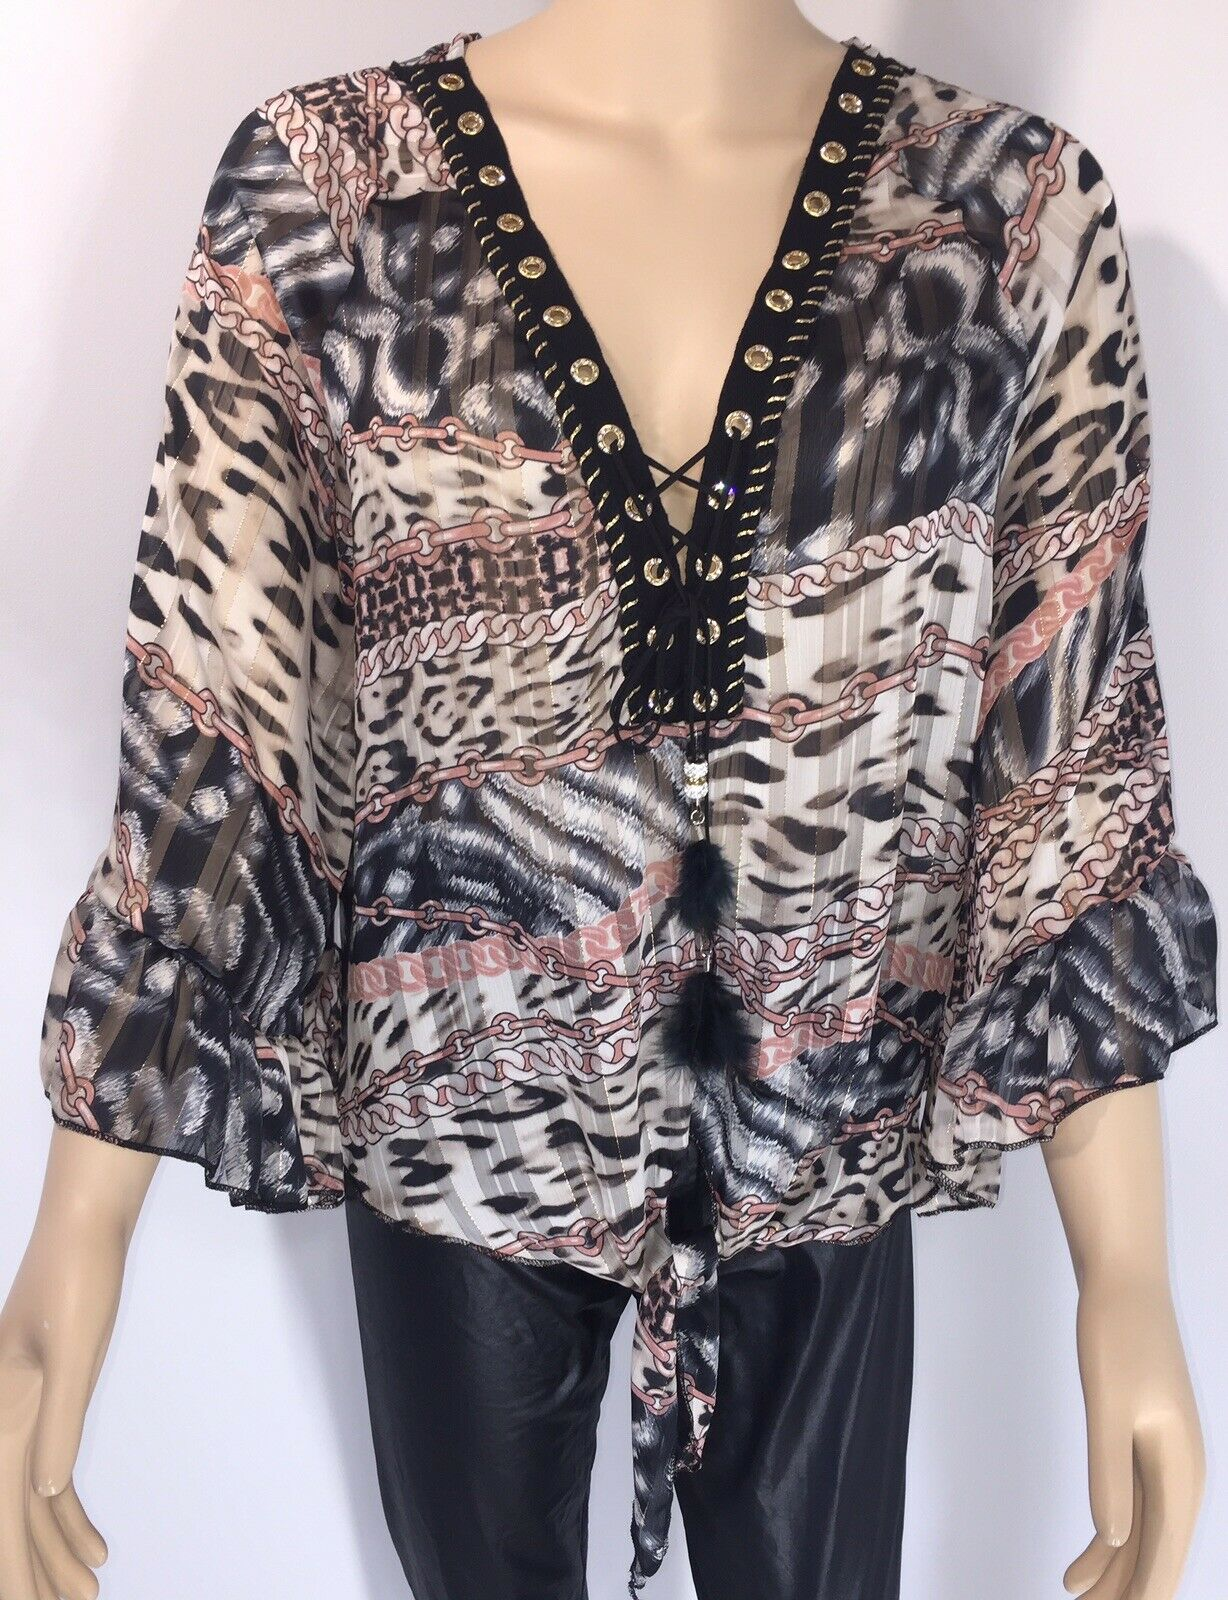 Leopard Chain Print Top Pink Tie Front Bell Sleeves gold Thread One Size NEW